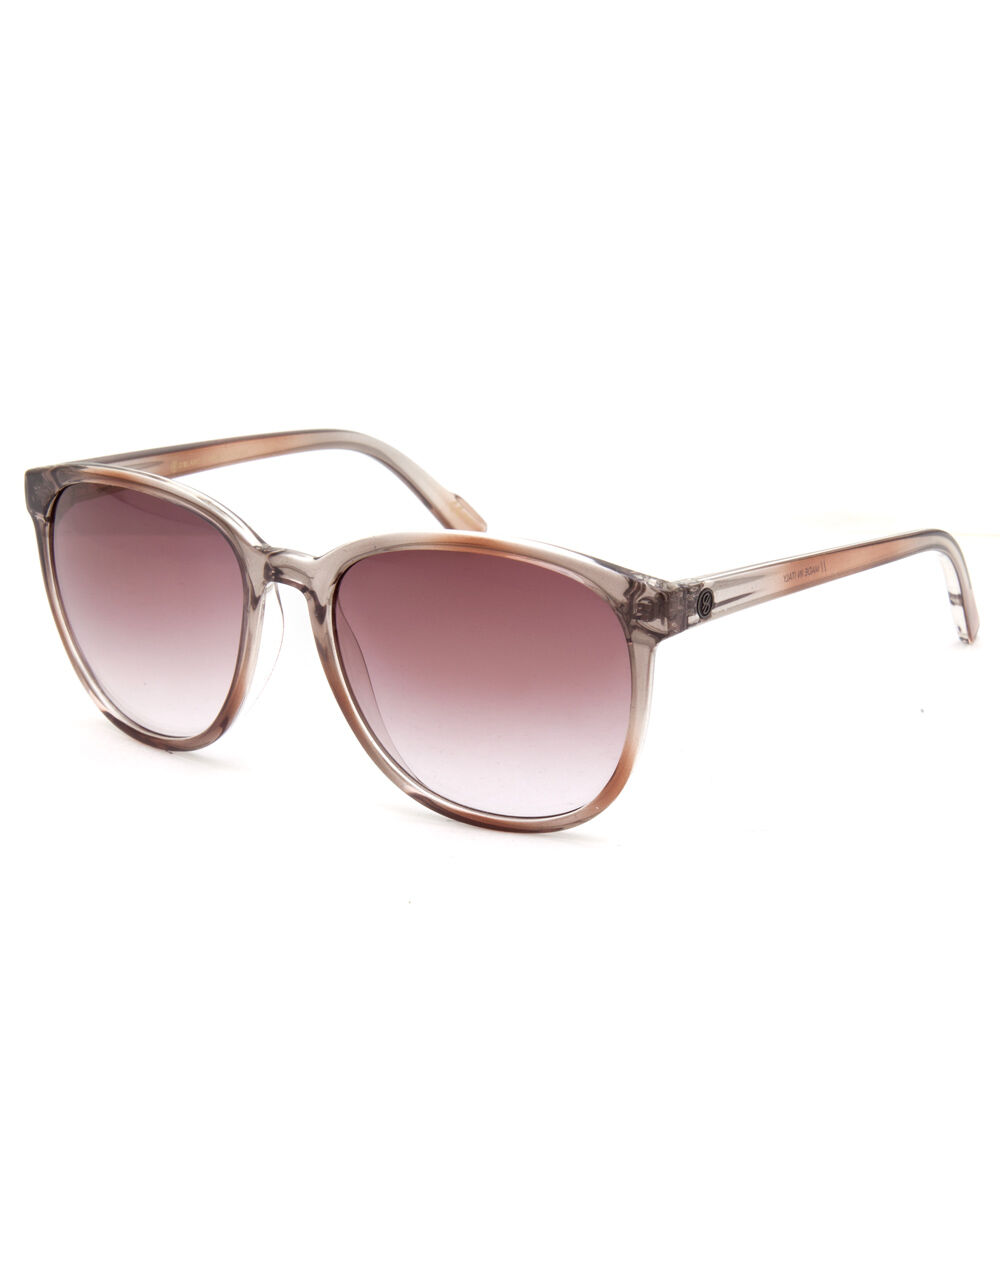 Image of D'BLANC AFTERNOON DELIGHT BROWN OMBRE SUNGLASSES